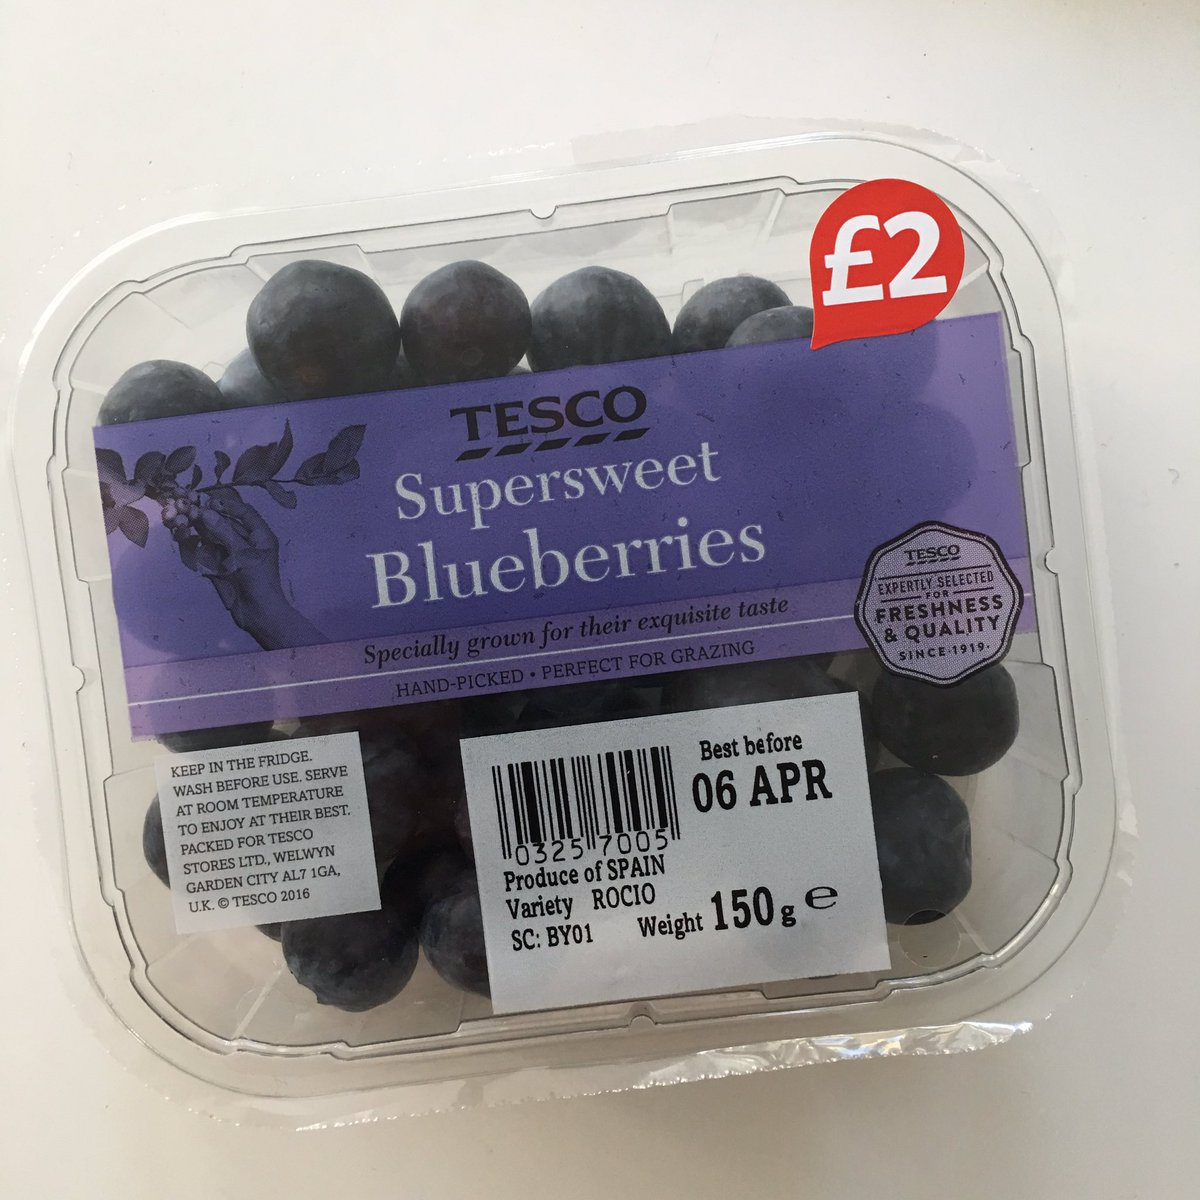 Chris White On Twitter Bargain Theses Blueberries At